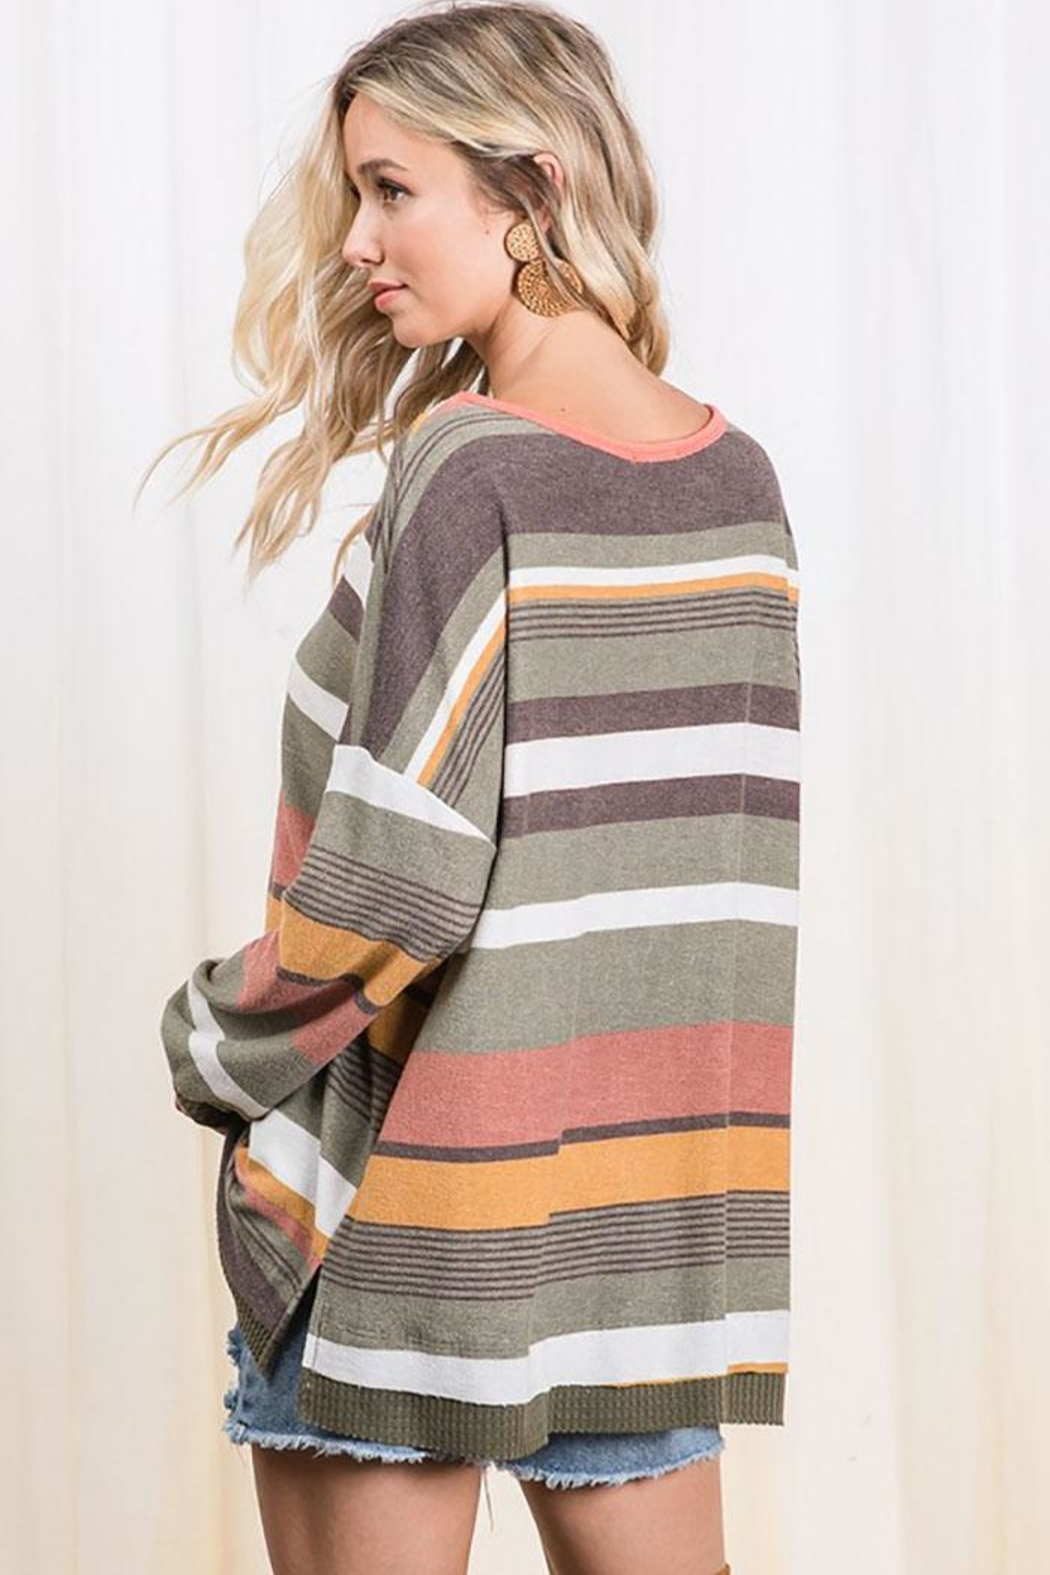 Ces Femme Multi Color Stripe Colorblock Tunic Top - Back Cropped Image